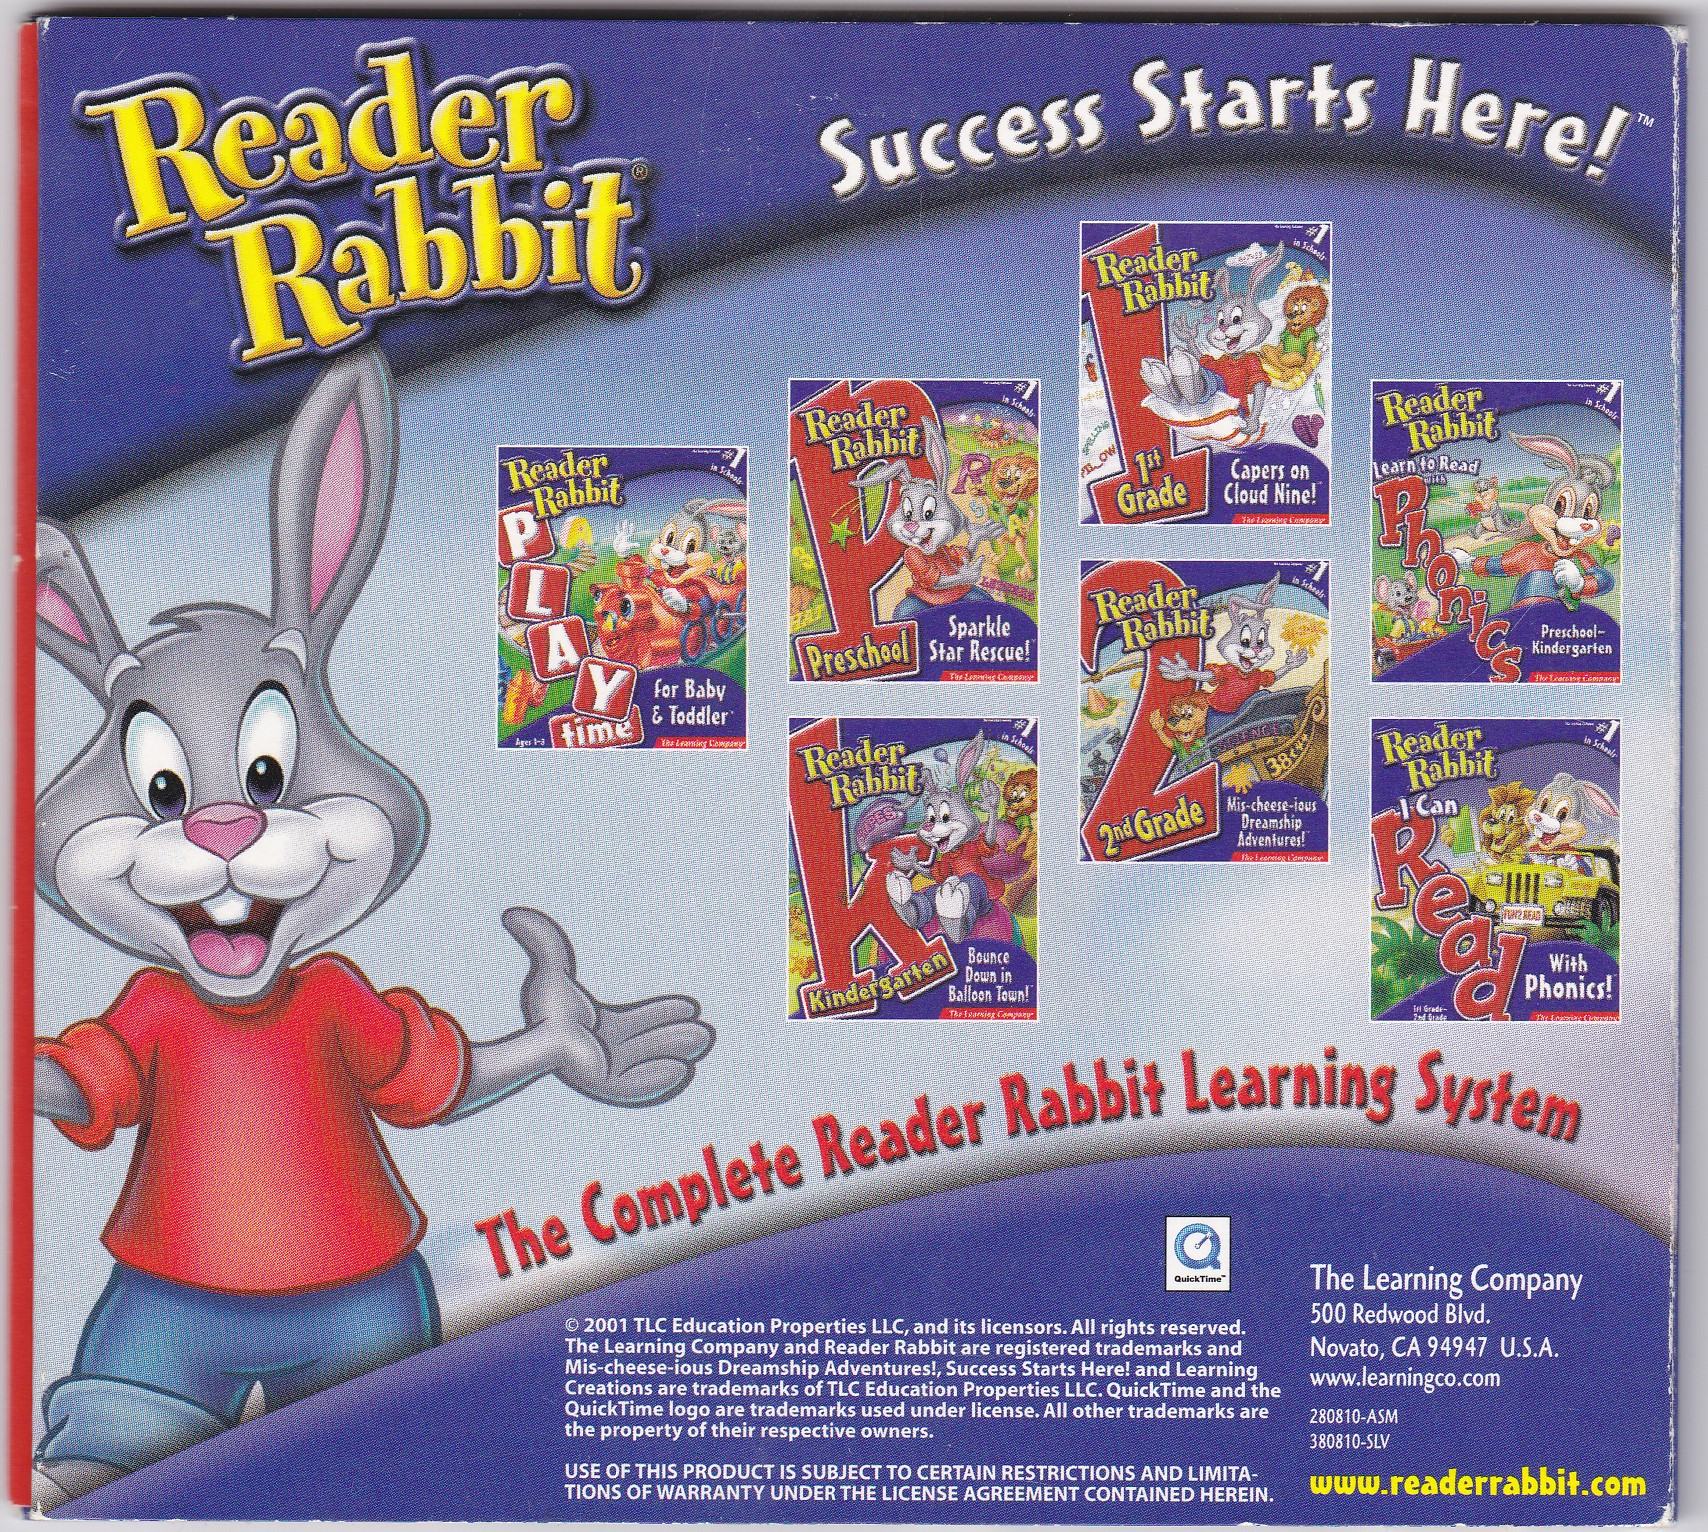 Reader Rabbit 2nd Grade Mis Cheese Ious Dreamship Adventures The Learning Company 2001 The Learning Company Free Download Borrow And Streaming Internet Archive Reader rabbit grade online free